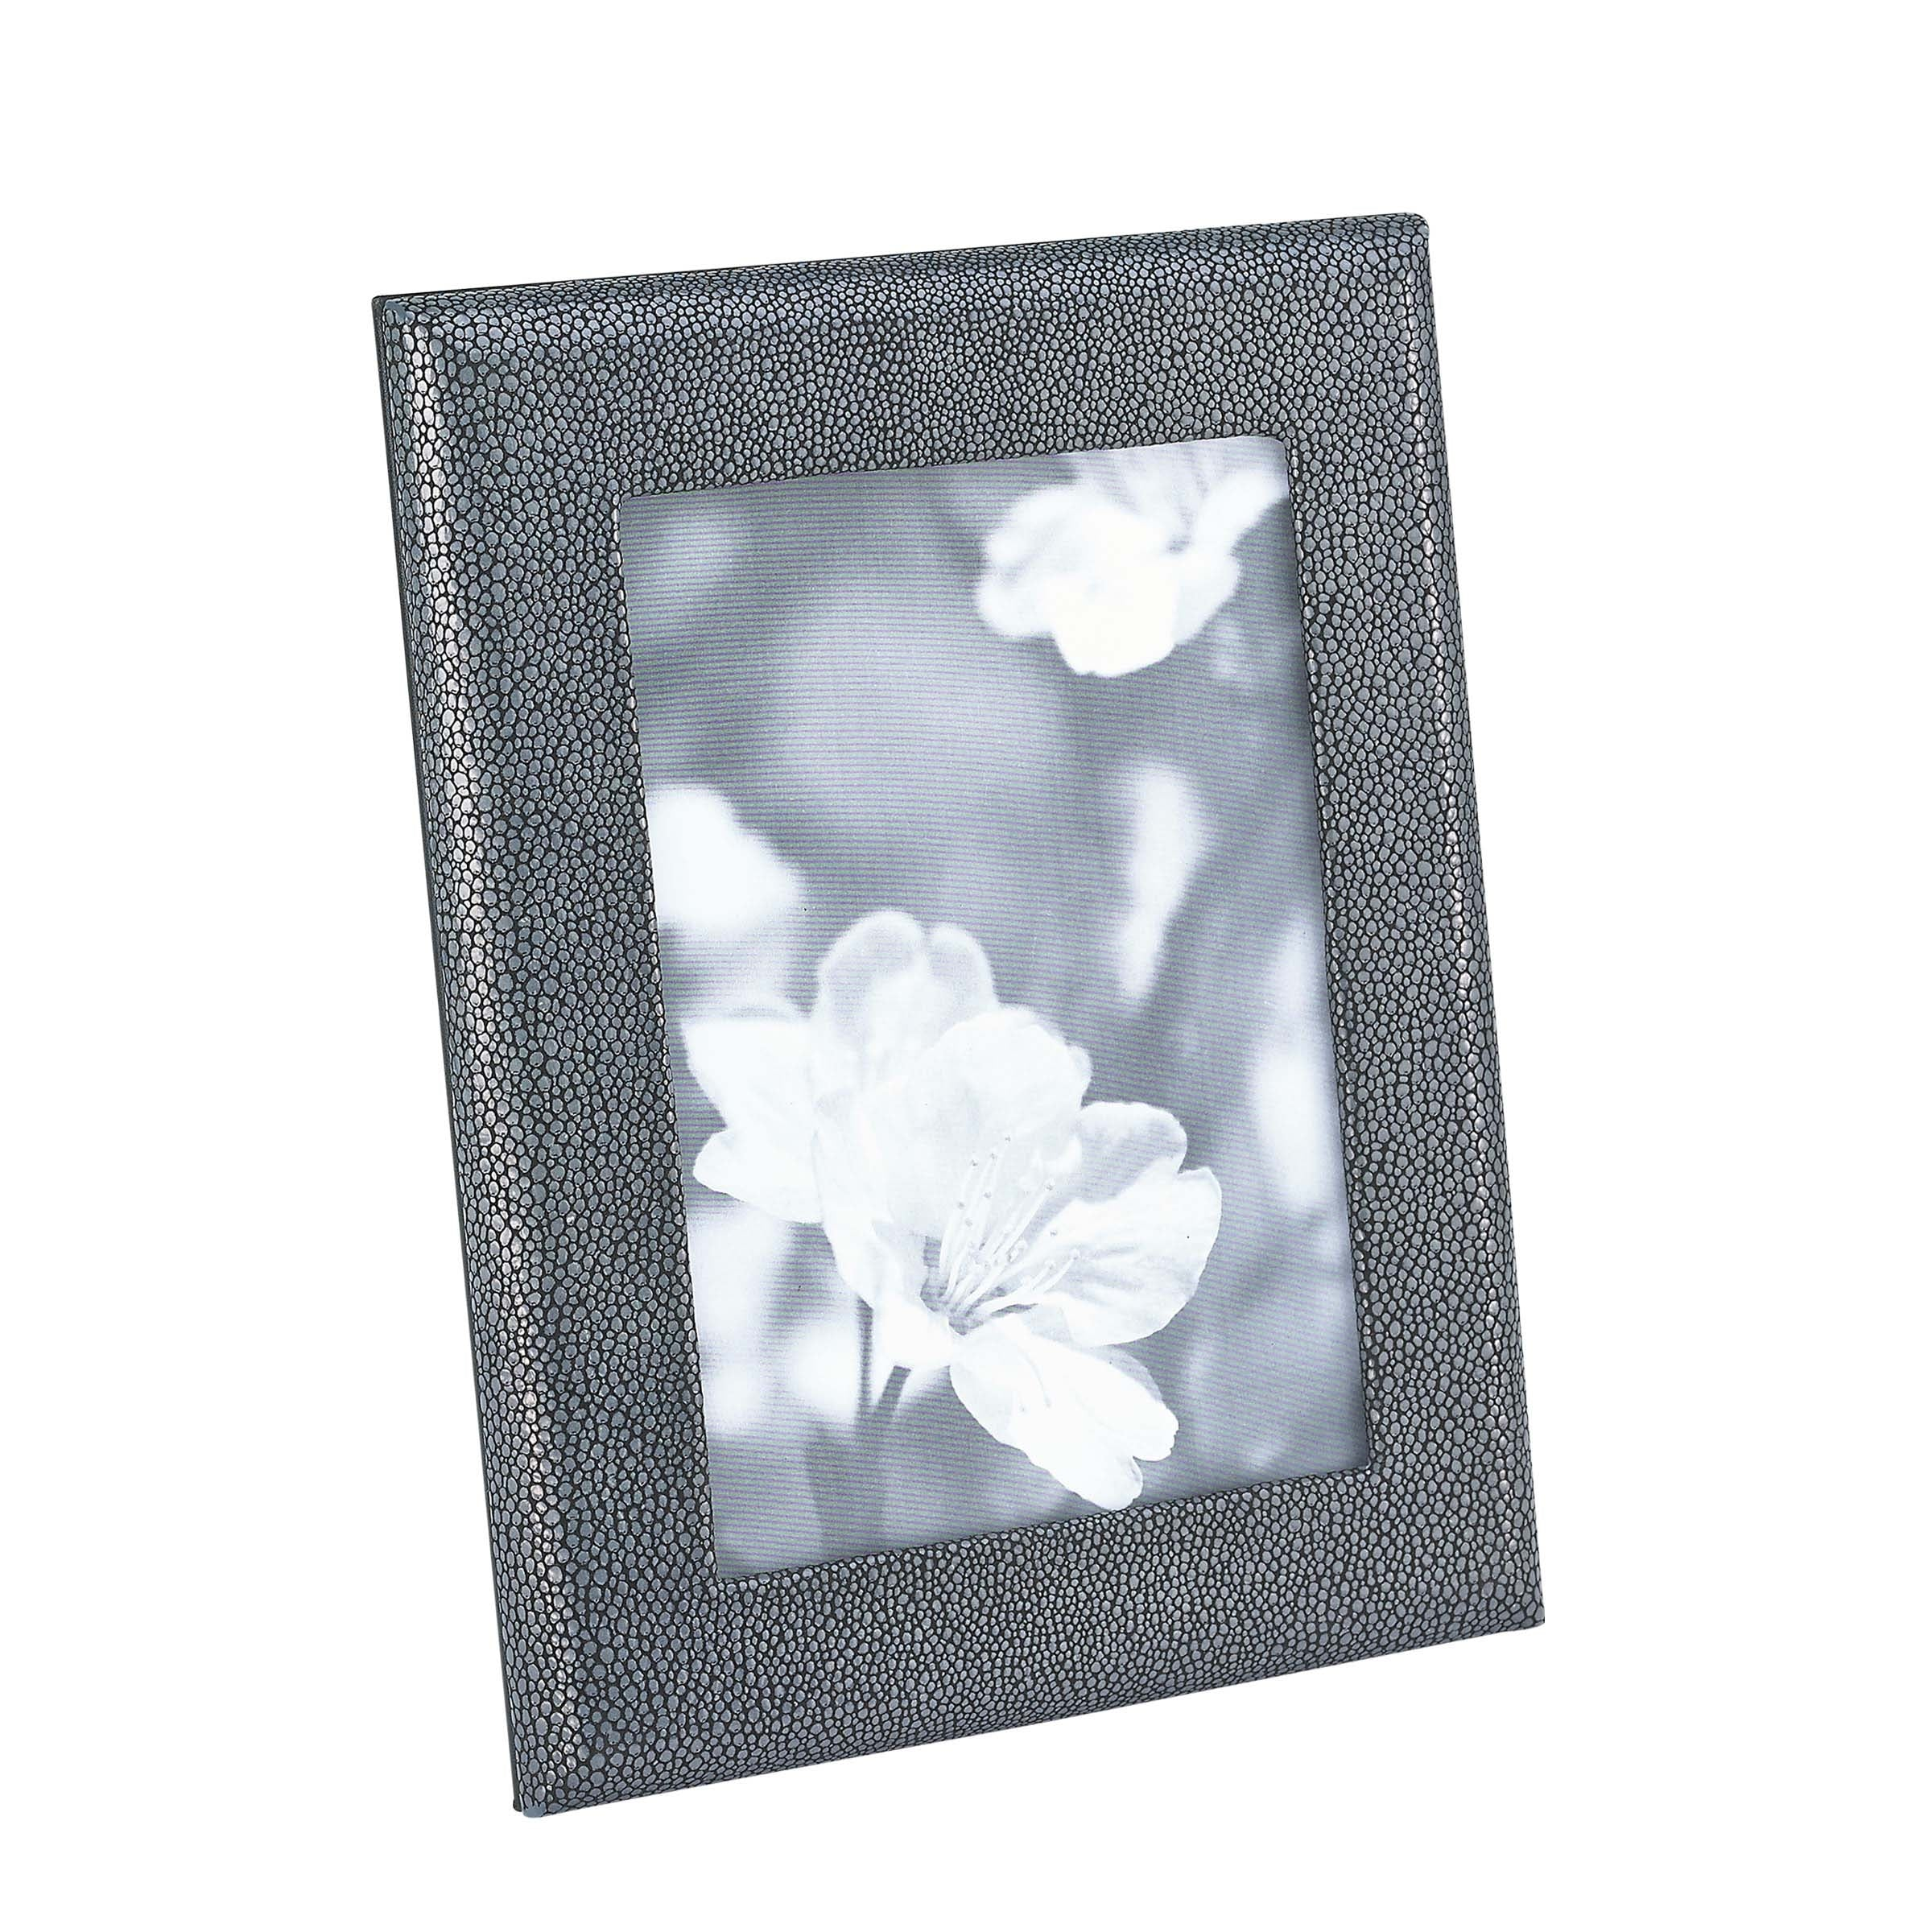 Embossed Shagreen Leather Picture Frame, 5x7 Inches